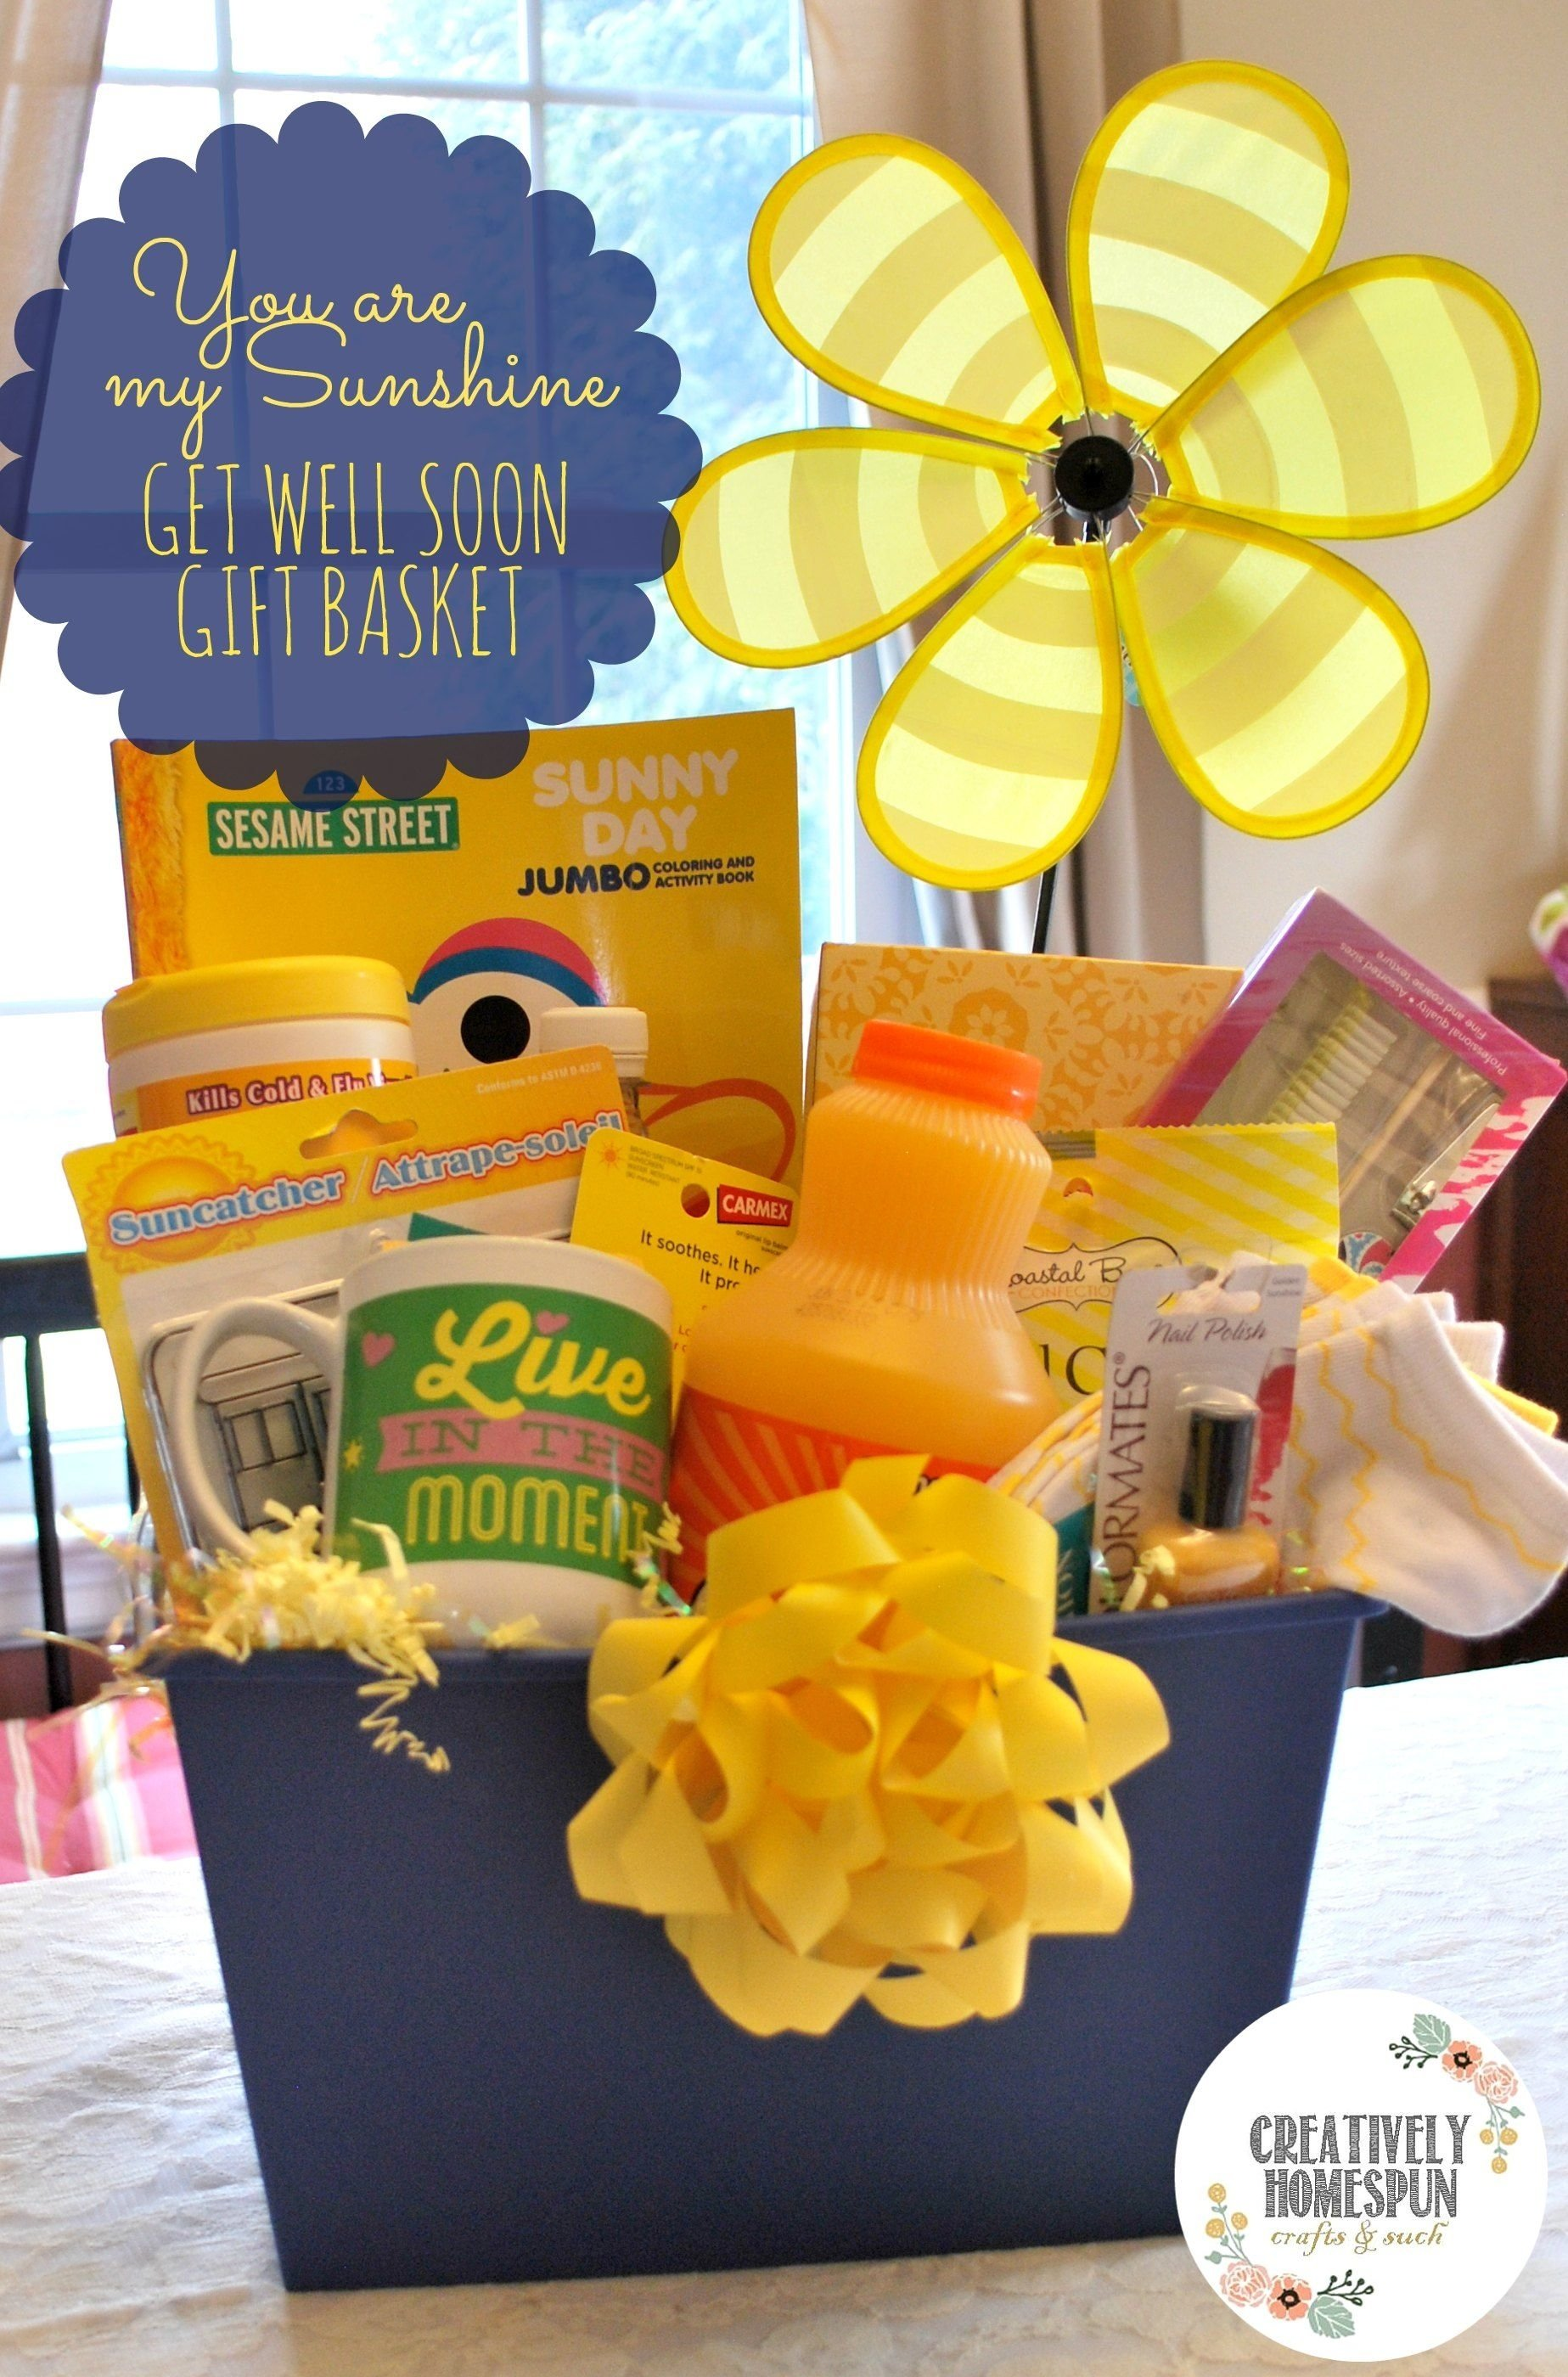 10 Nice Get Well Soon Basket Ideas diy you are my sunshine get well gift basket sunshine gift and 1 2021